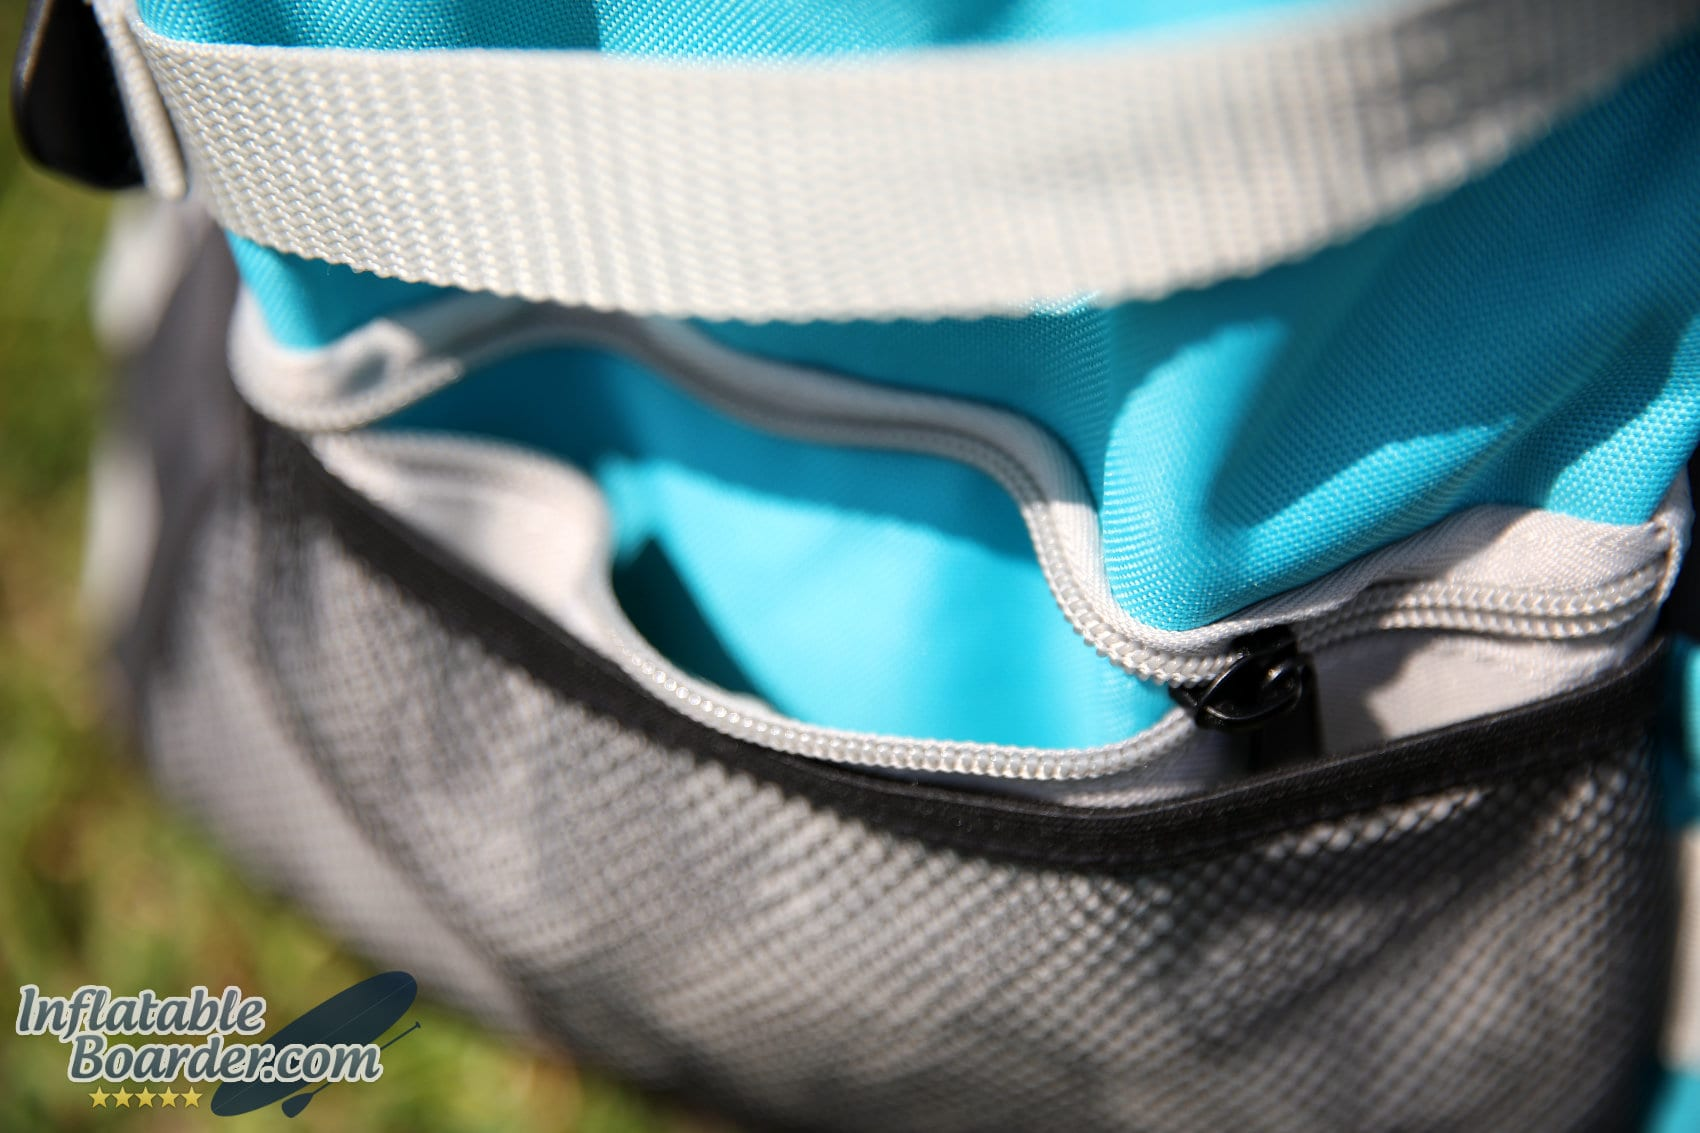 Bag Mesh Pocket